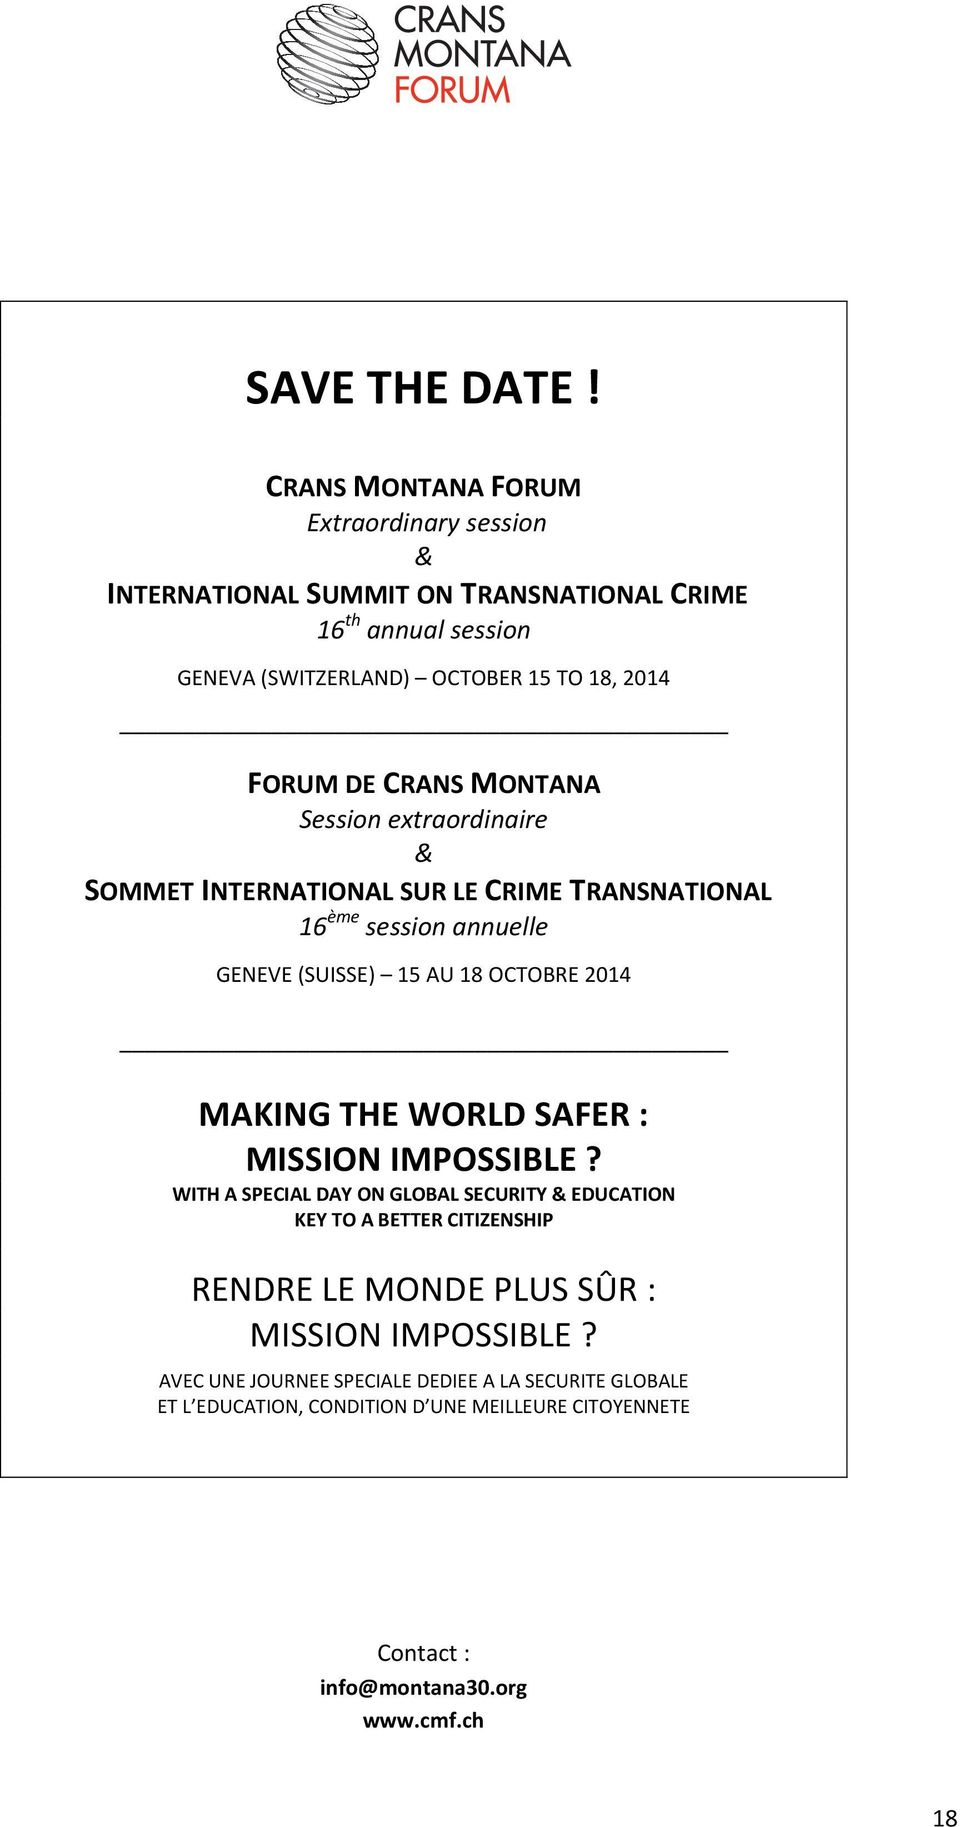 CRANS MONTANA Session extraordinaire & SOMMET INTERNATIONAL SUR LE CRIME TRANSNATIONAL 16 ème session annuelle GENEVE (SUISSE) 15 AU 18 OCTOBRE 2014 MAKING THE